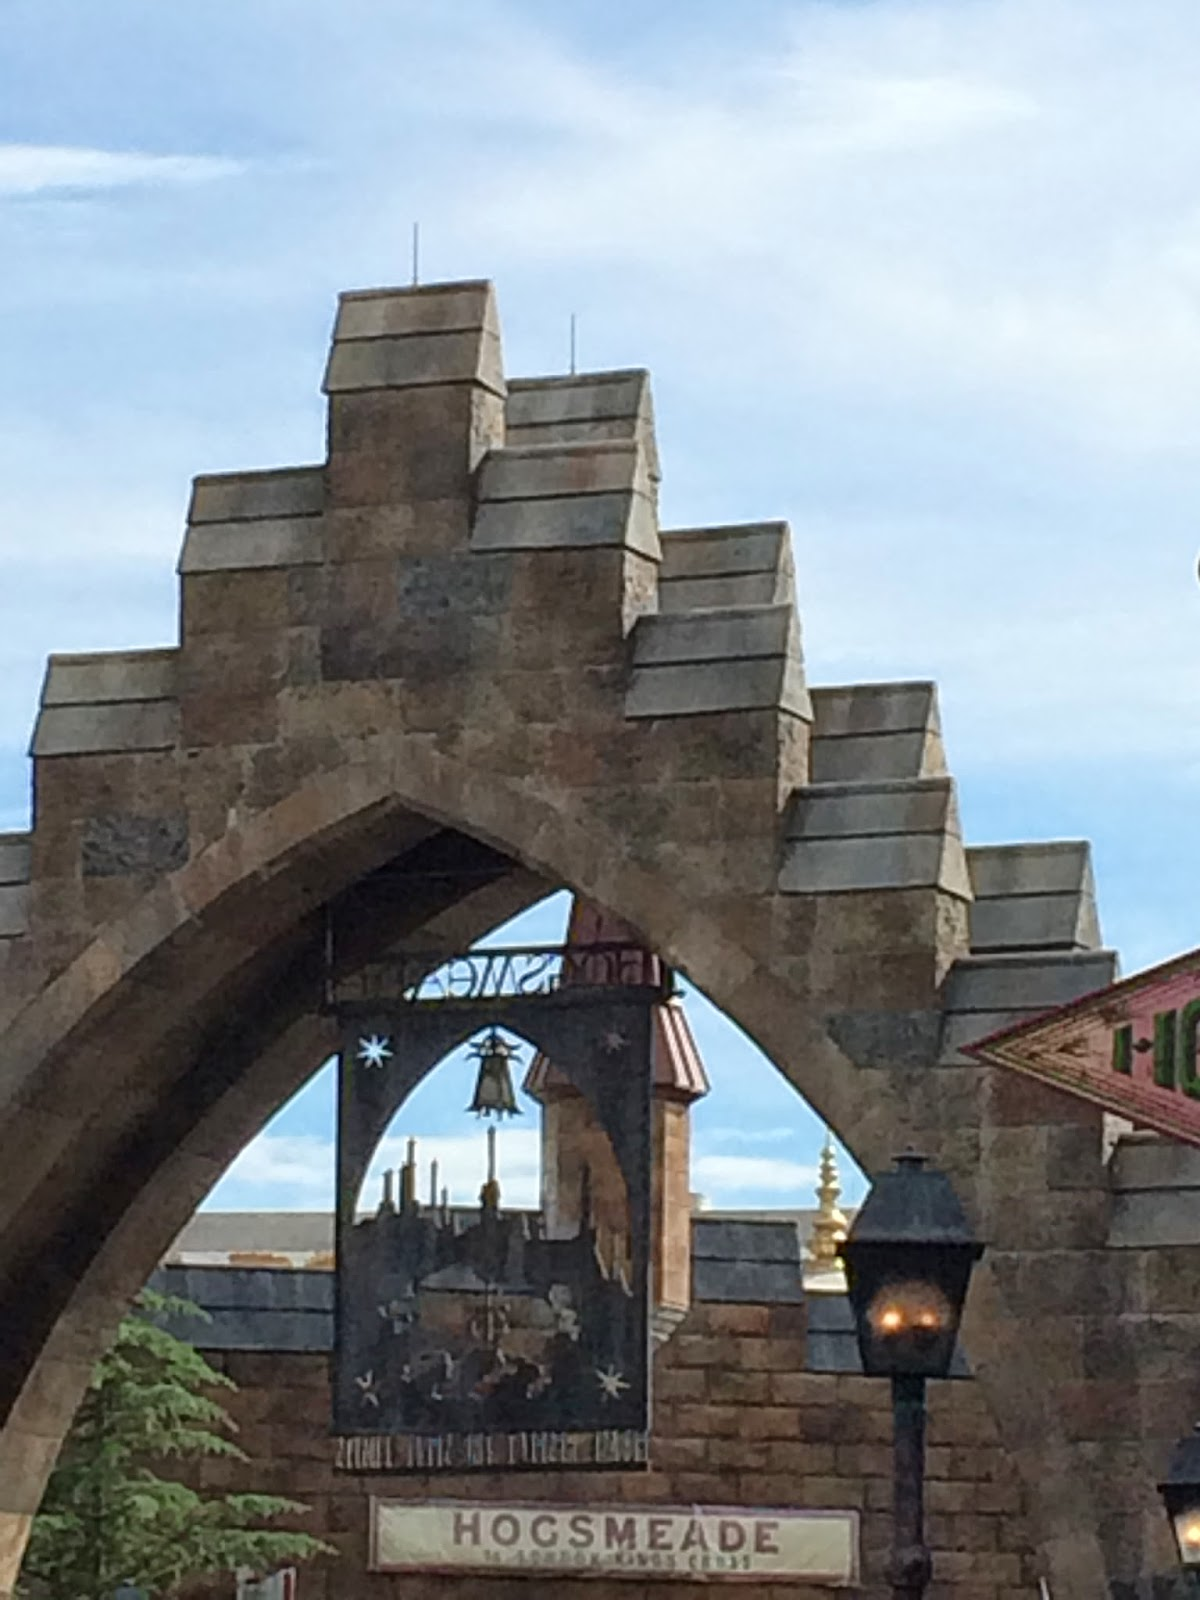 A view of Hogsmeade Station from inside the WWoHP